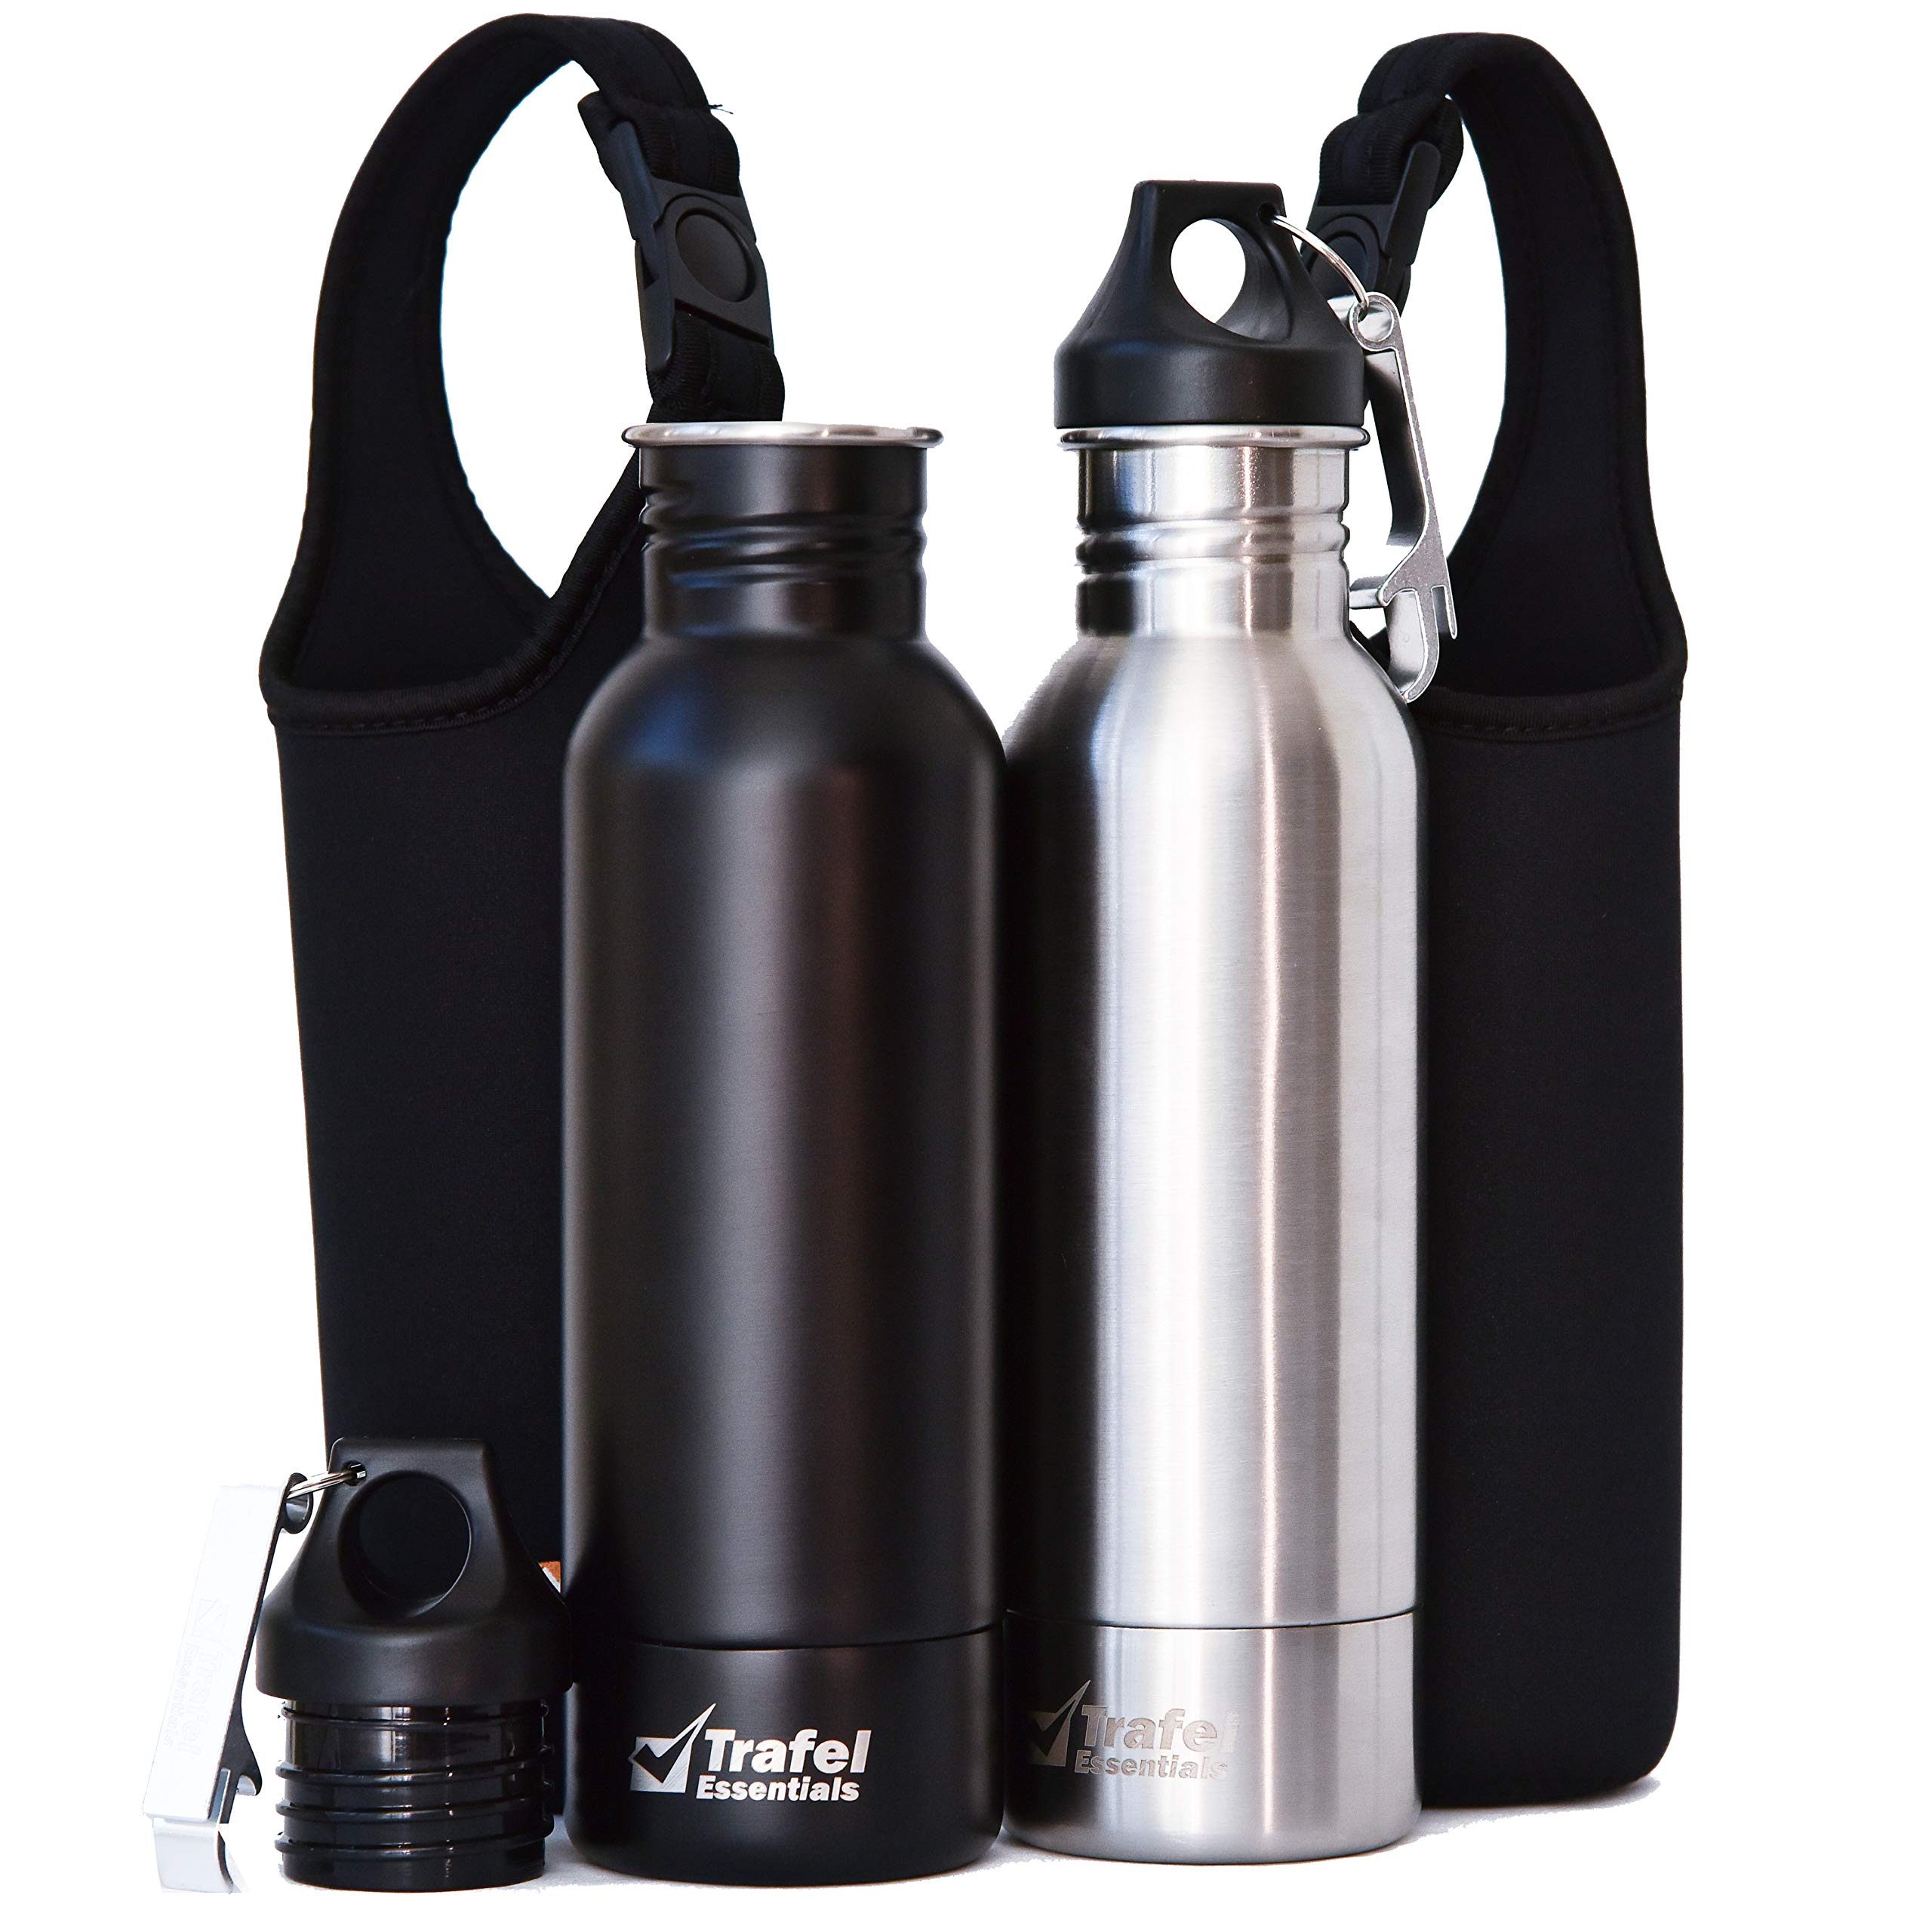 Essential Cooler Stainless Steel Bottle Insulator 2 Pack Gift Set for 12oz beer with Neoprene Sleeves, Bonus Insulated Pads and Bottle Openers - (Matte Black and Silver Colors)